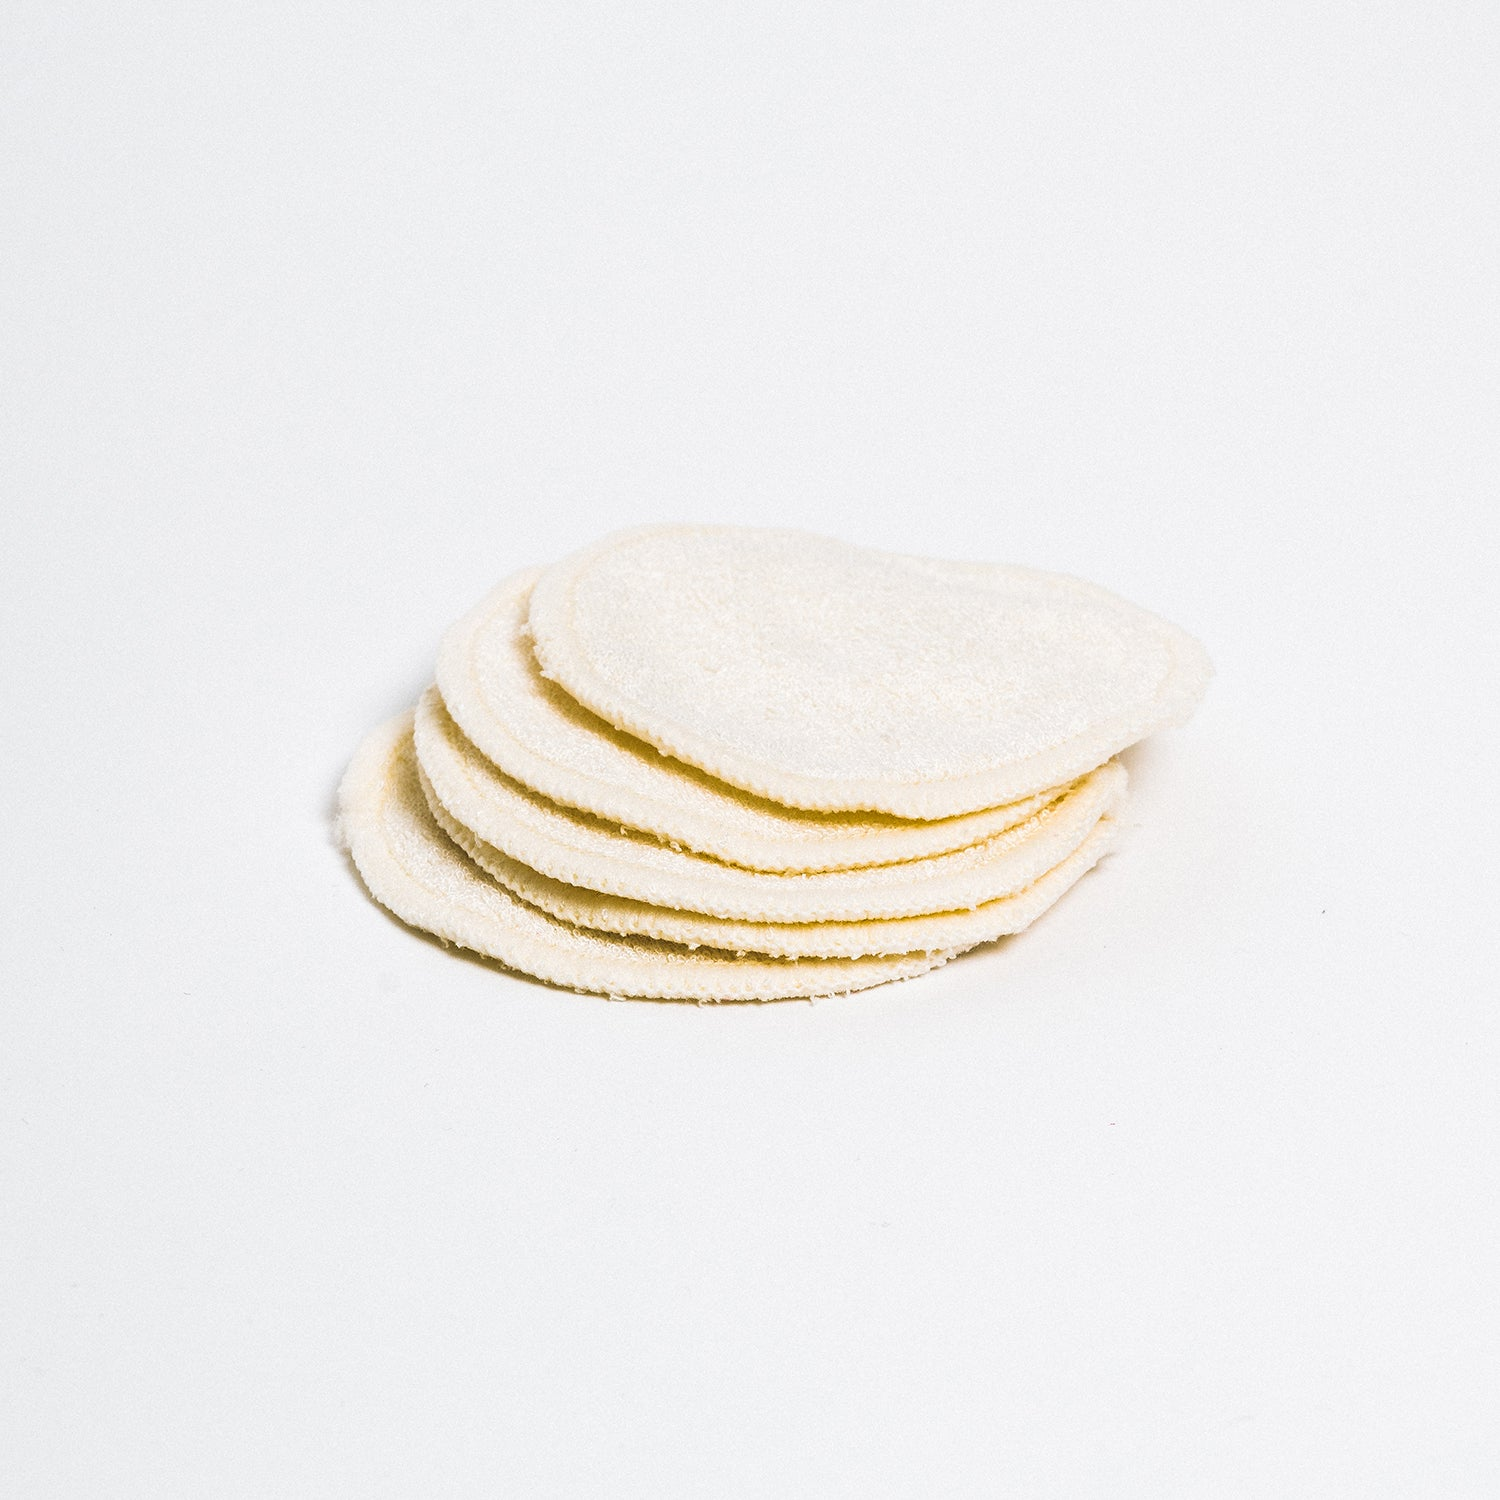 A stack of reusable fabric cotton rounds.